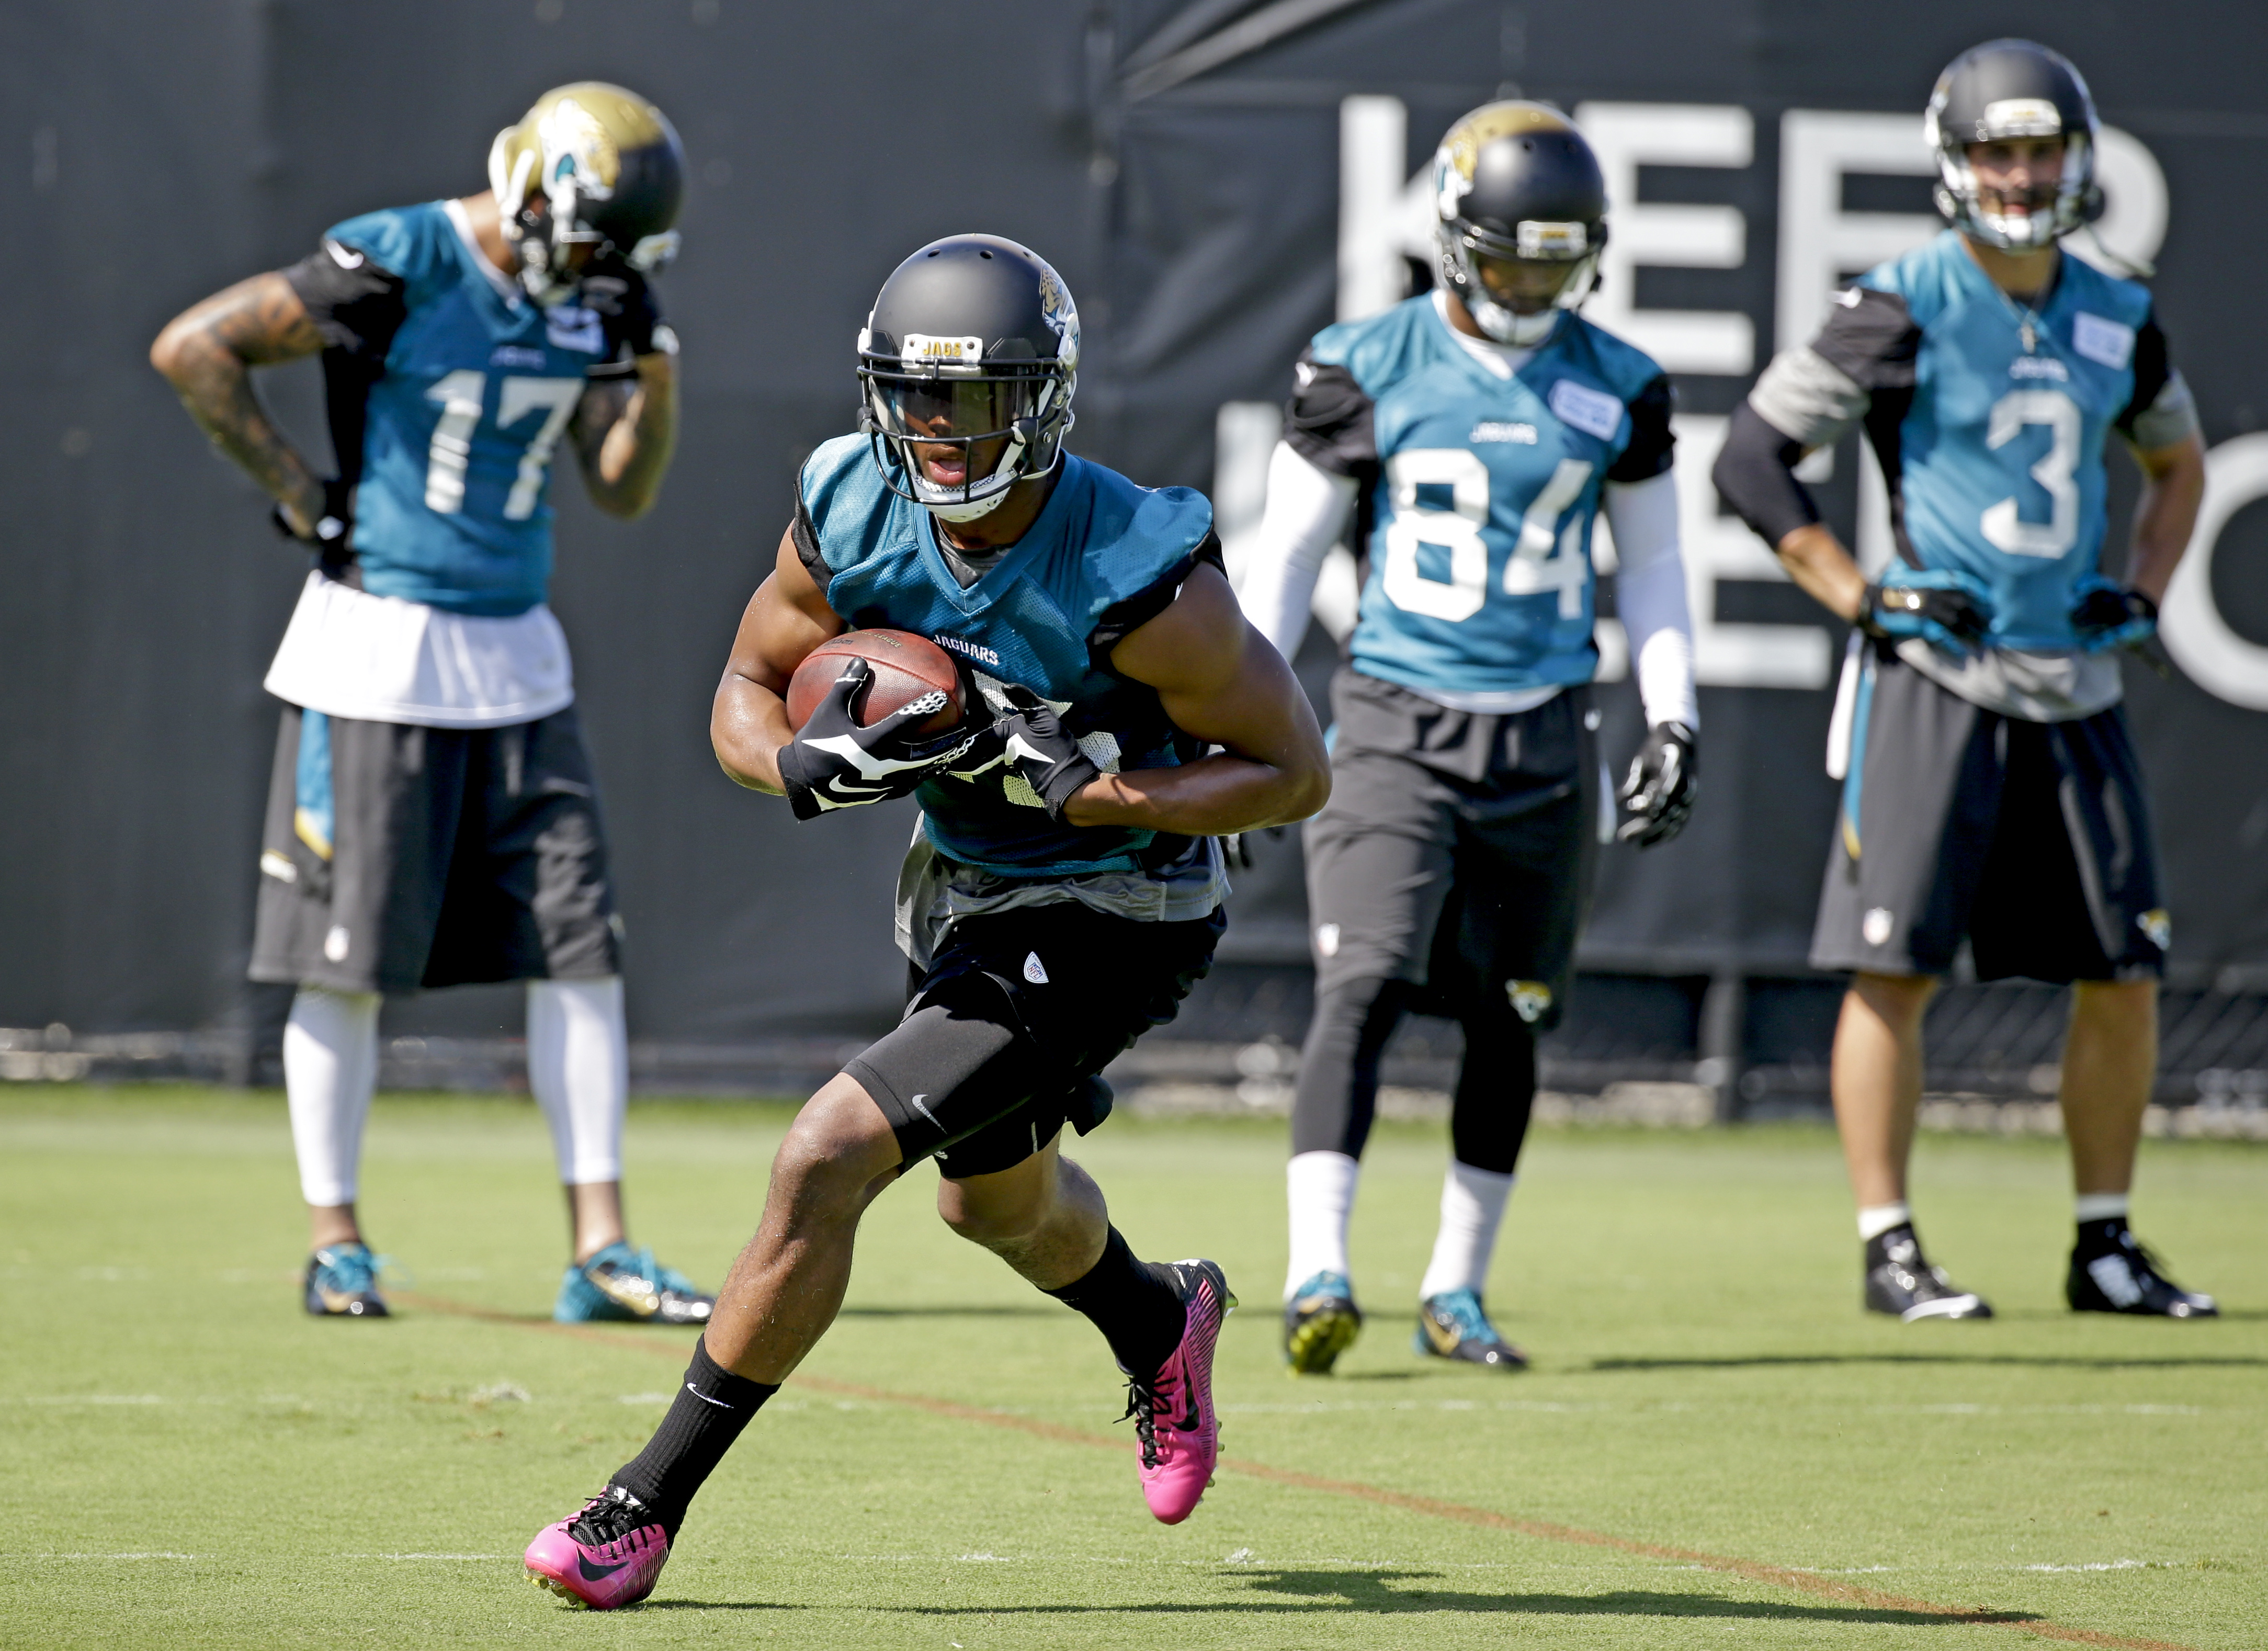 Jacksonville Jaguars wide receiver Allen Robinson, center, runs with the ball after a reception during NFL football minicamp, Wednesday, June 17, 2015, in Jacksonville, Fla. (AP Photo/John Raoux)